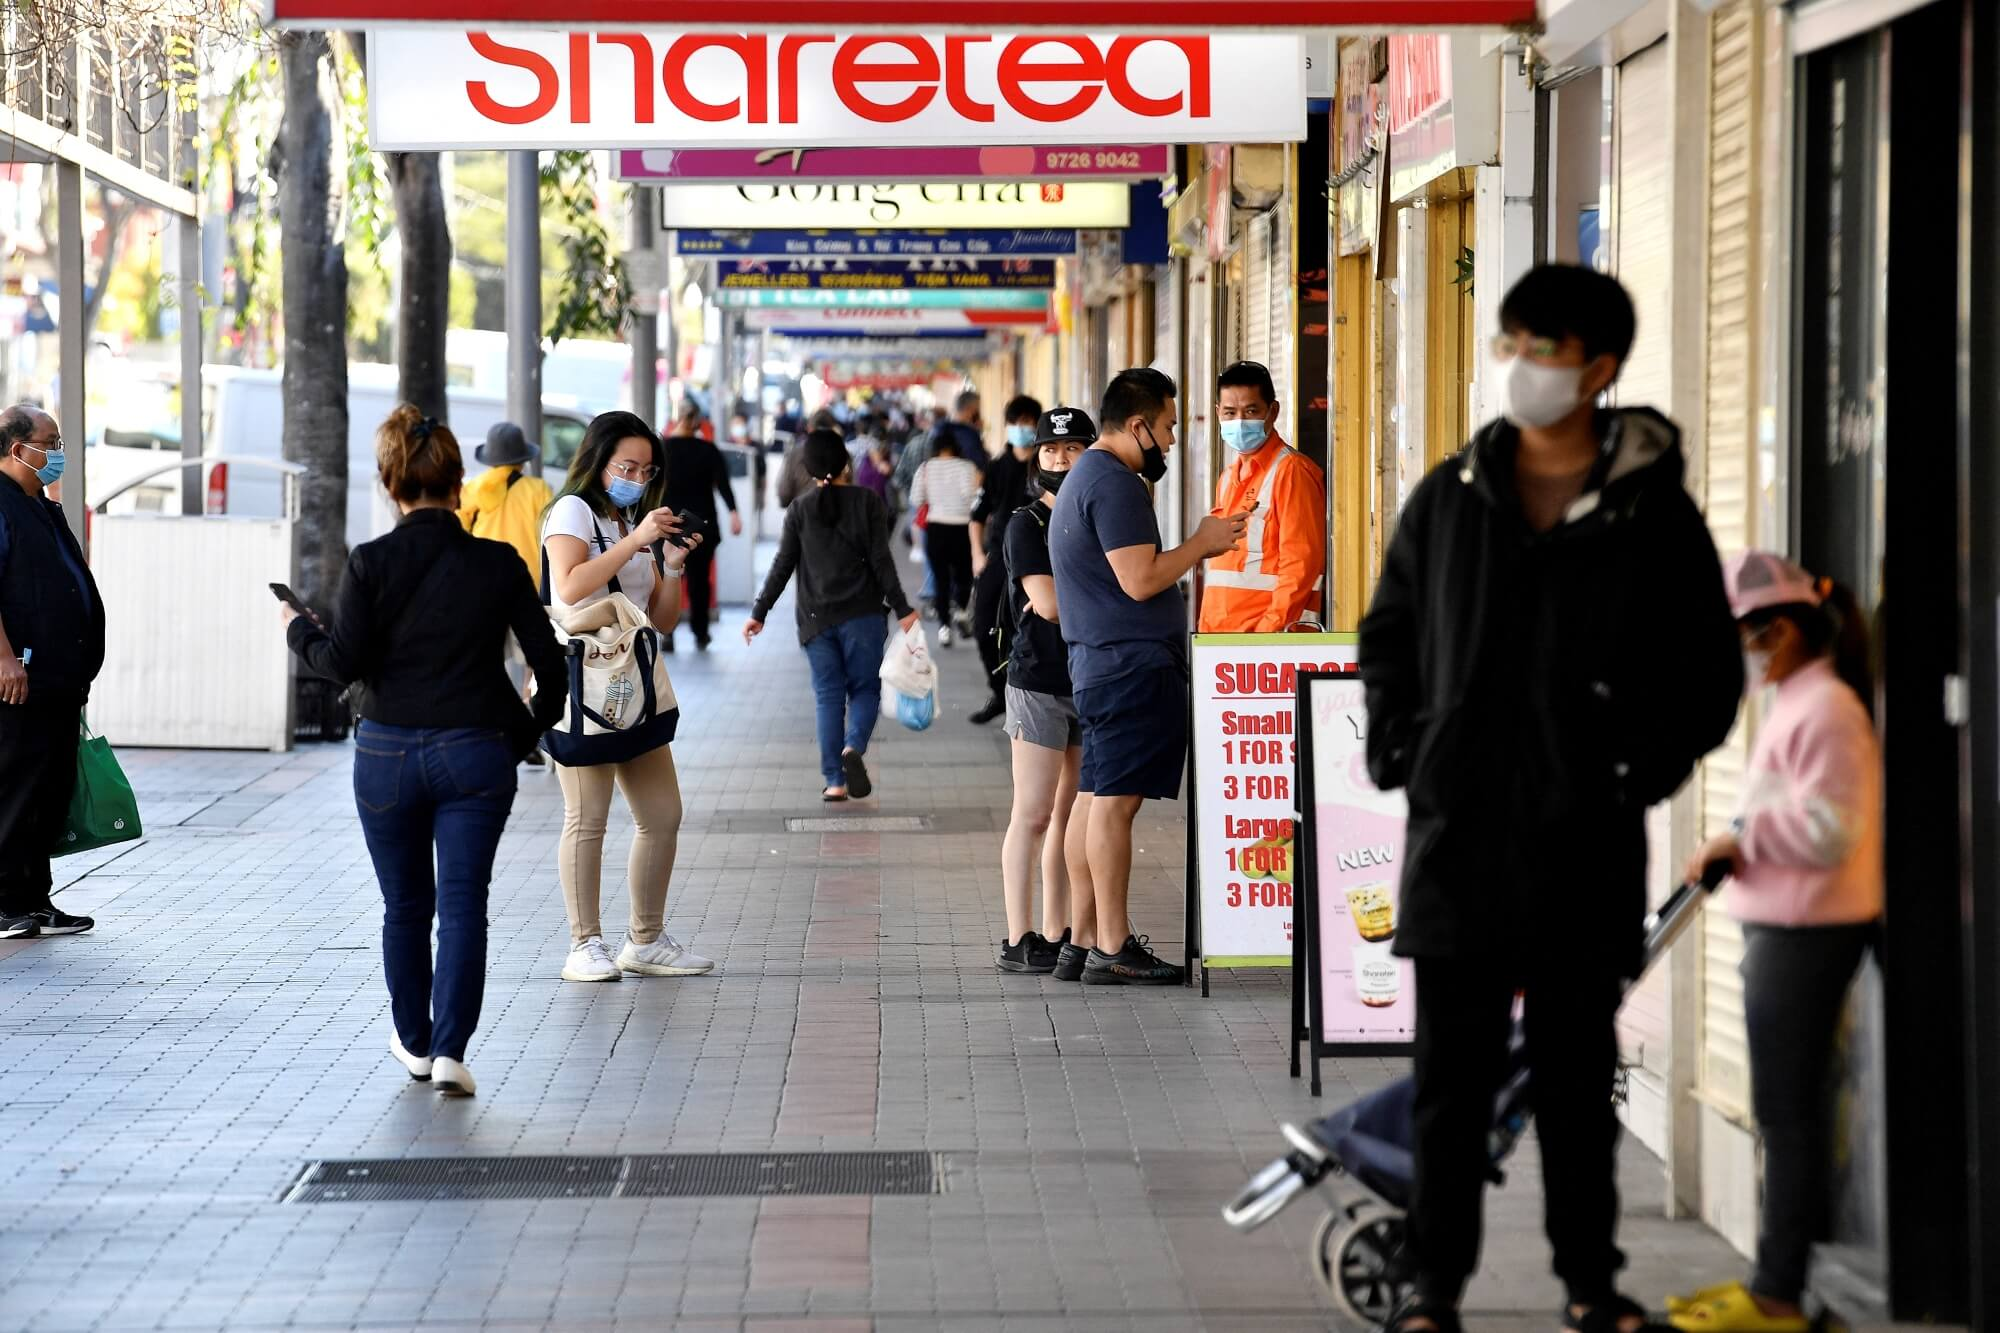 Financial support for international students in Australia to pay rent, groceries